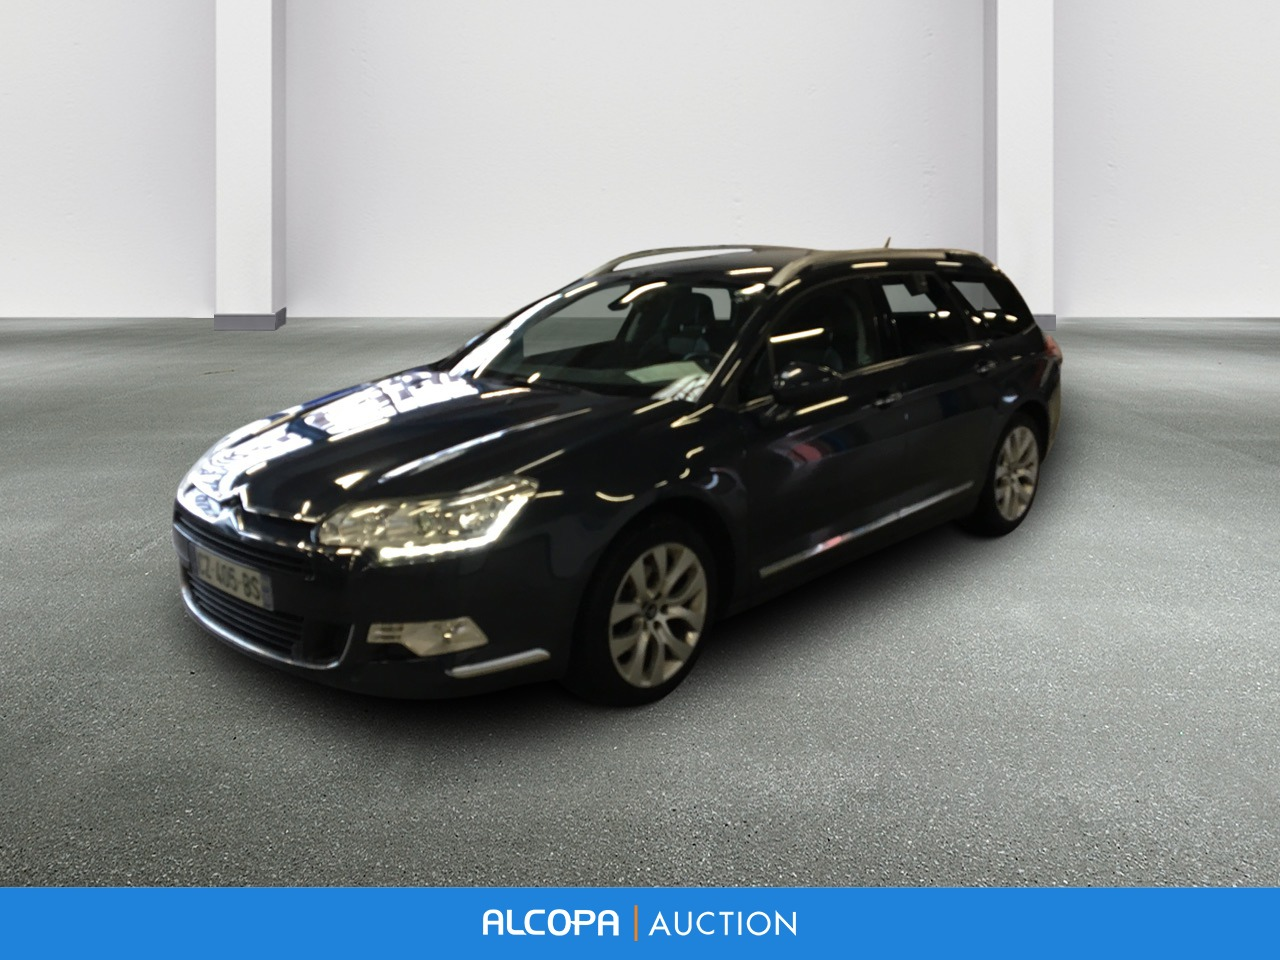 citroen c5 tourer c5 tourer hdi 160 fap exclusive alcopa auction. Black Bedroom Furniture Sets. Home Design Ideas